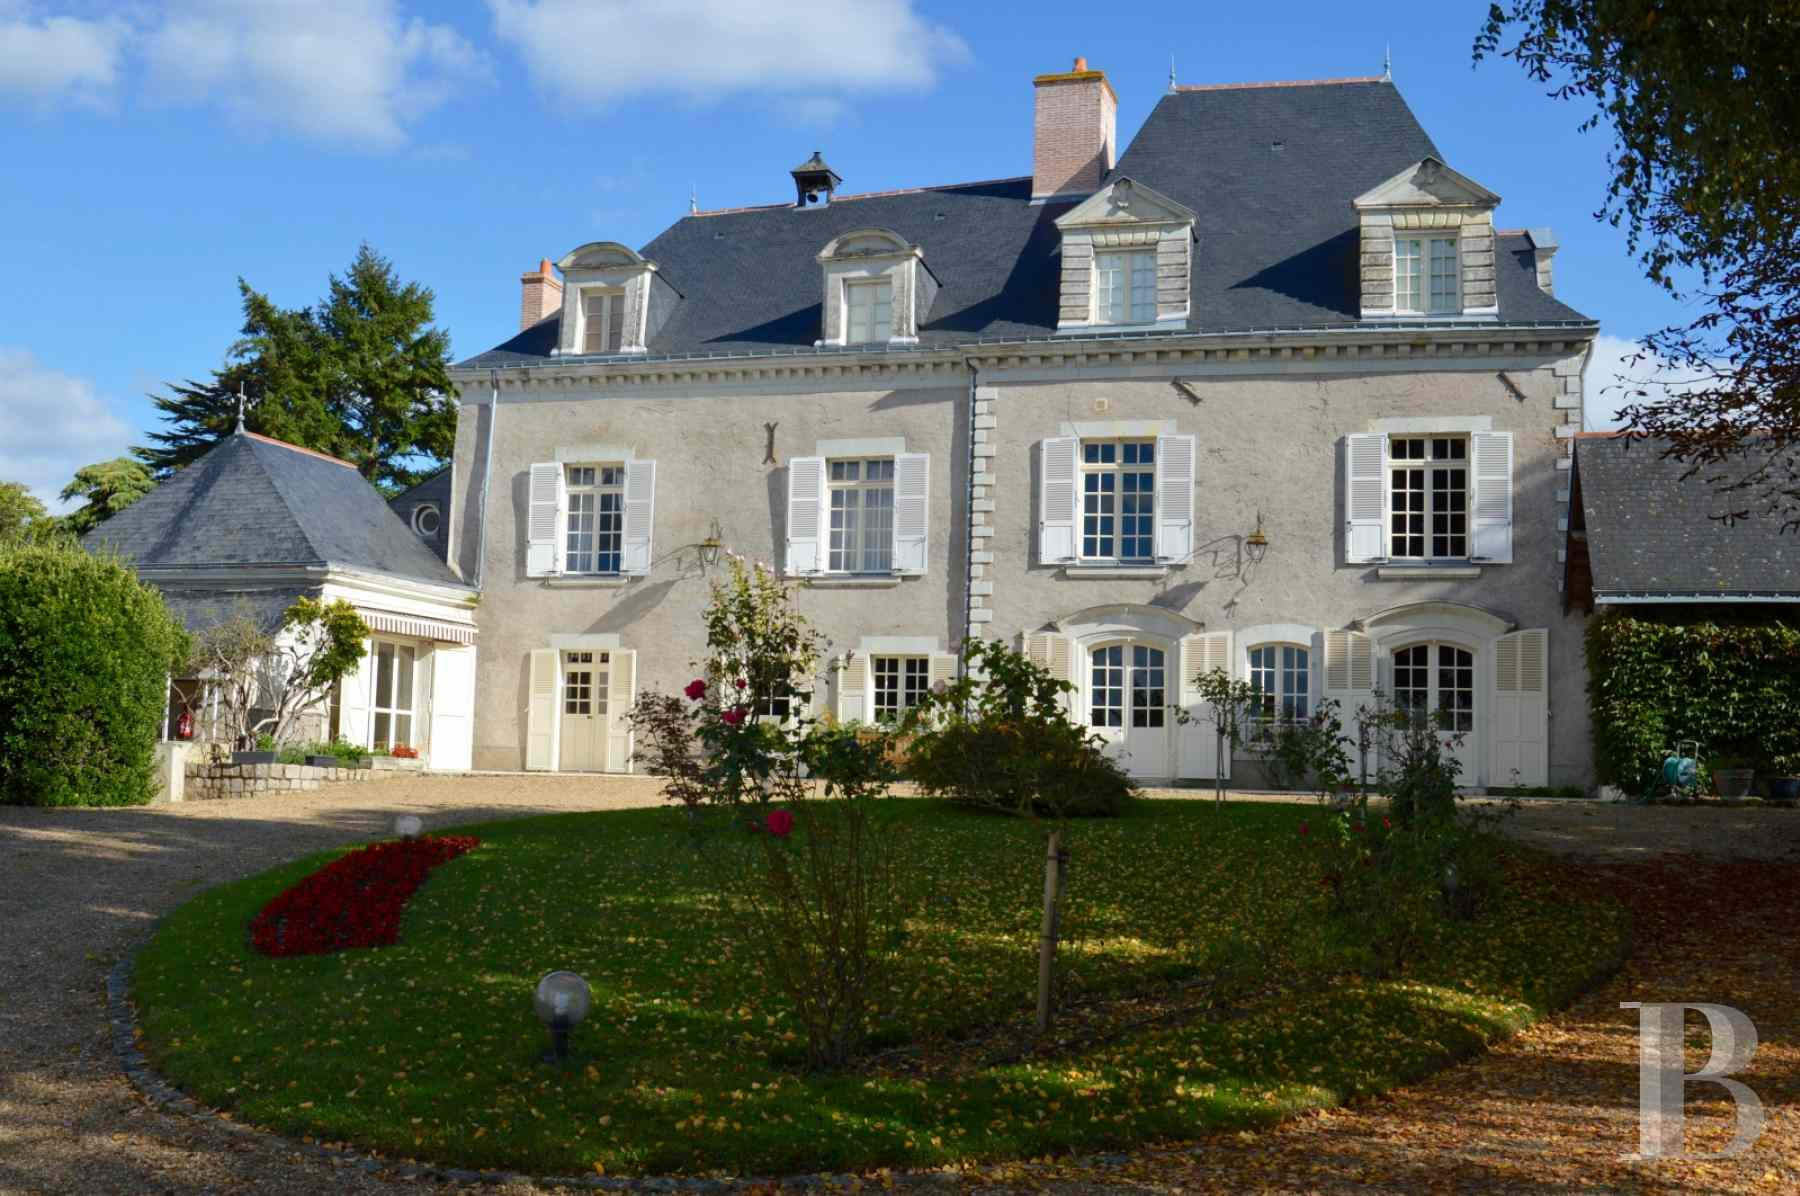 France mansions for sale pays de loire 17th century - 2 zoom